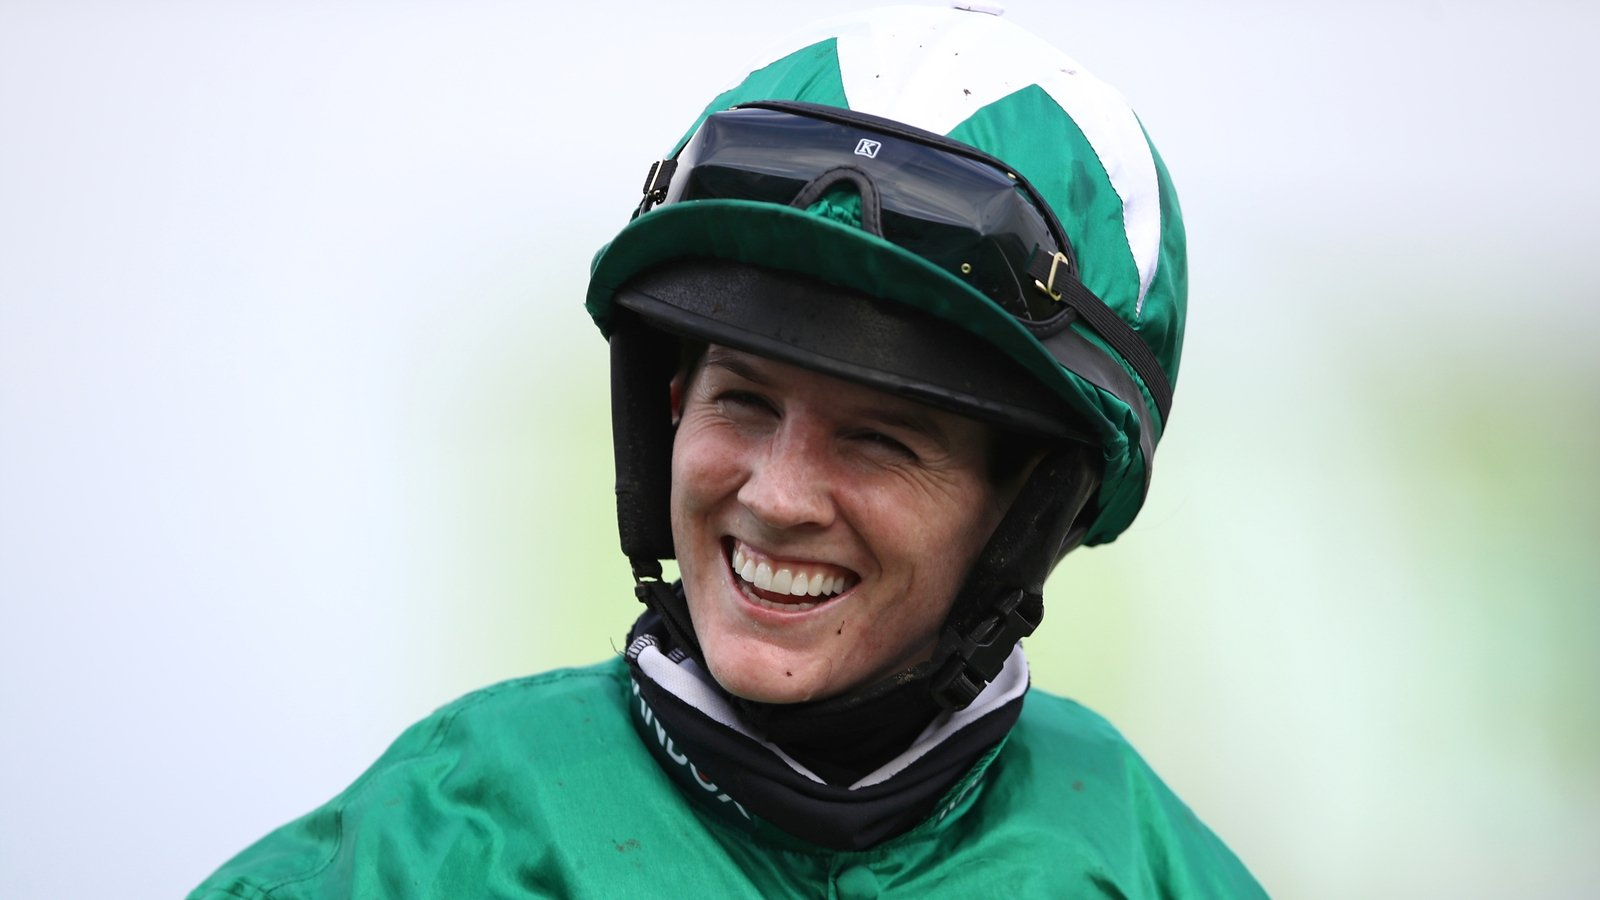 Blackmore boots home plunge horse at Cork